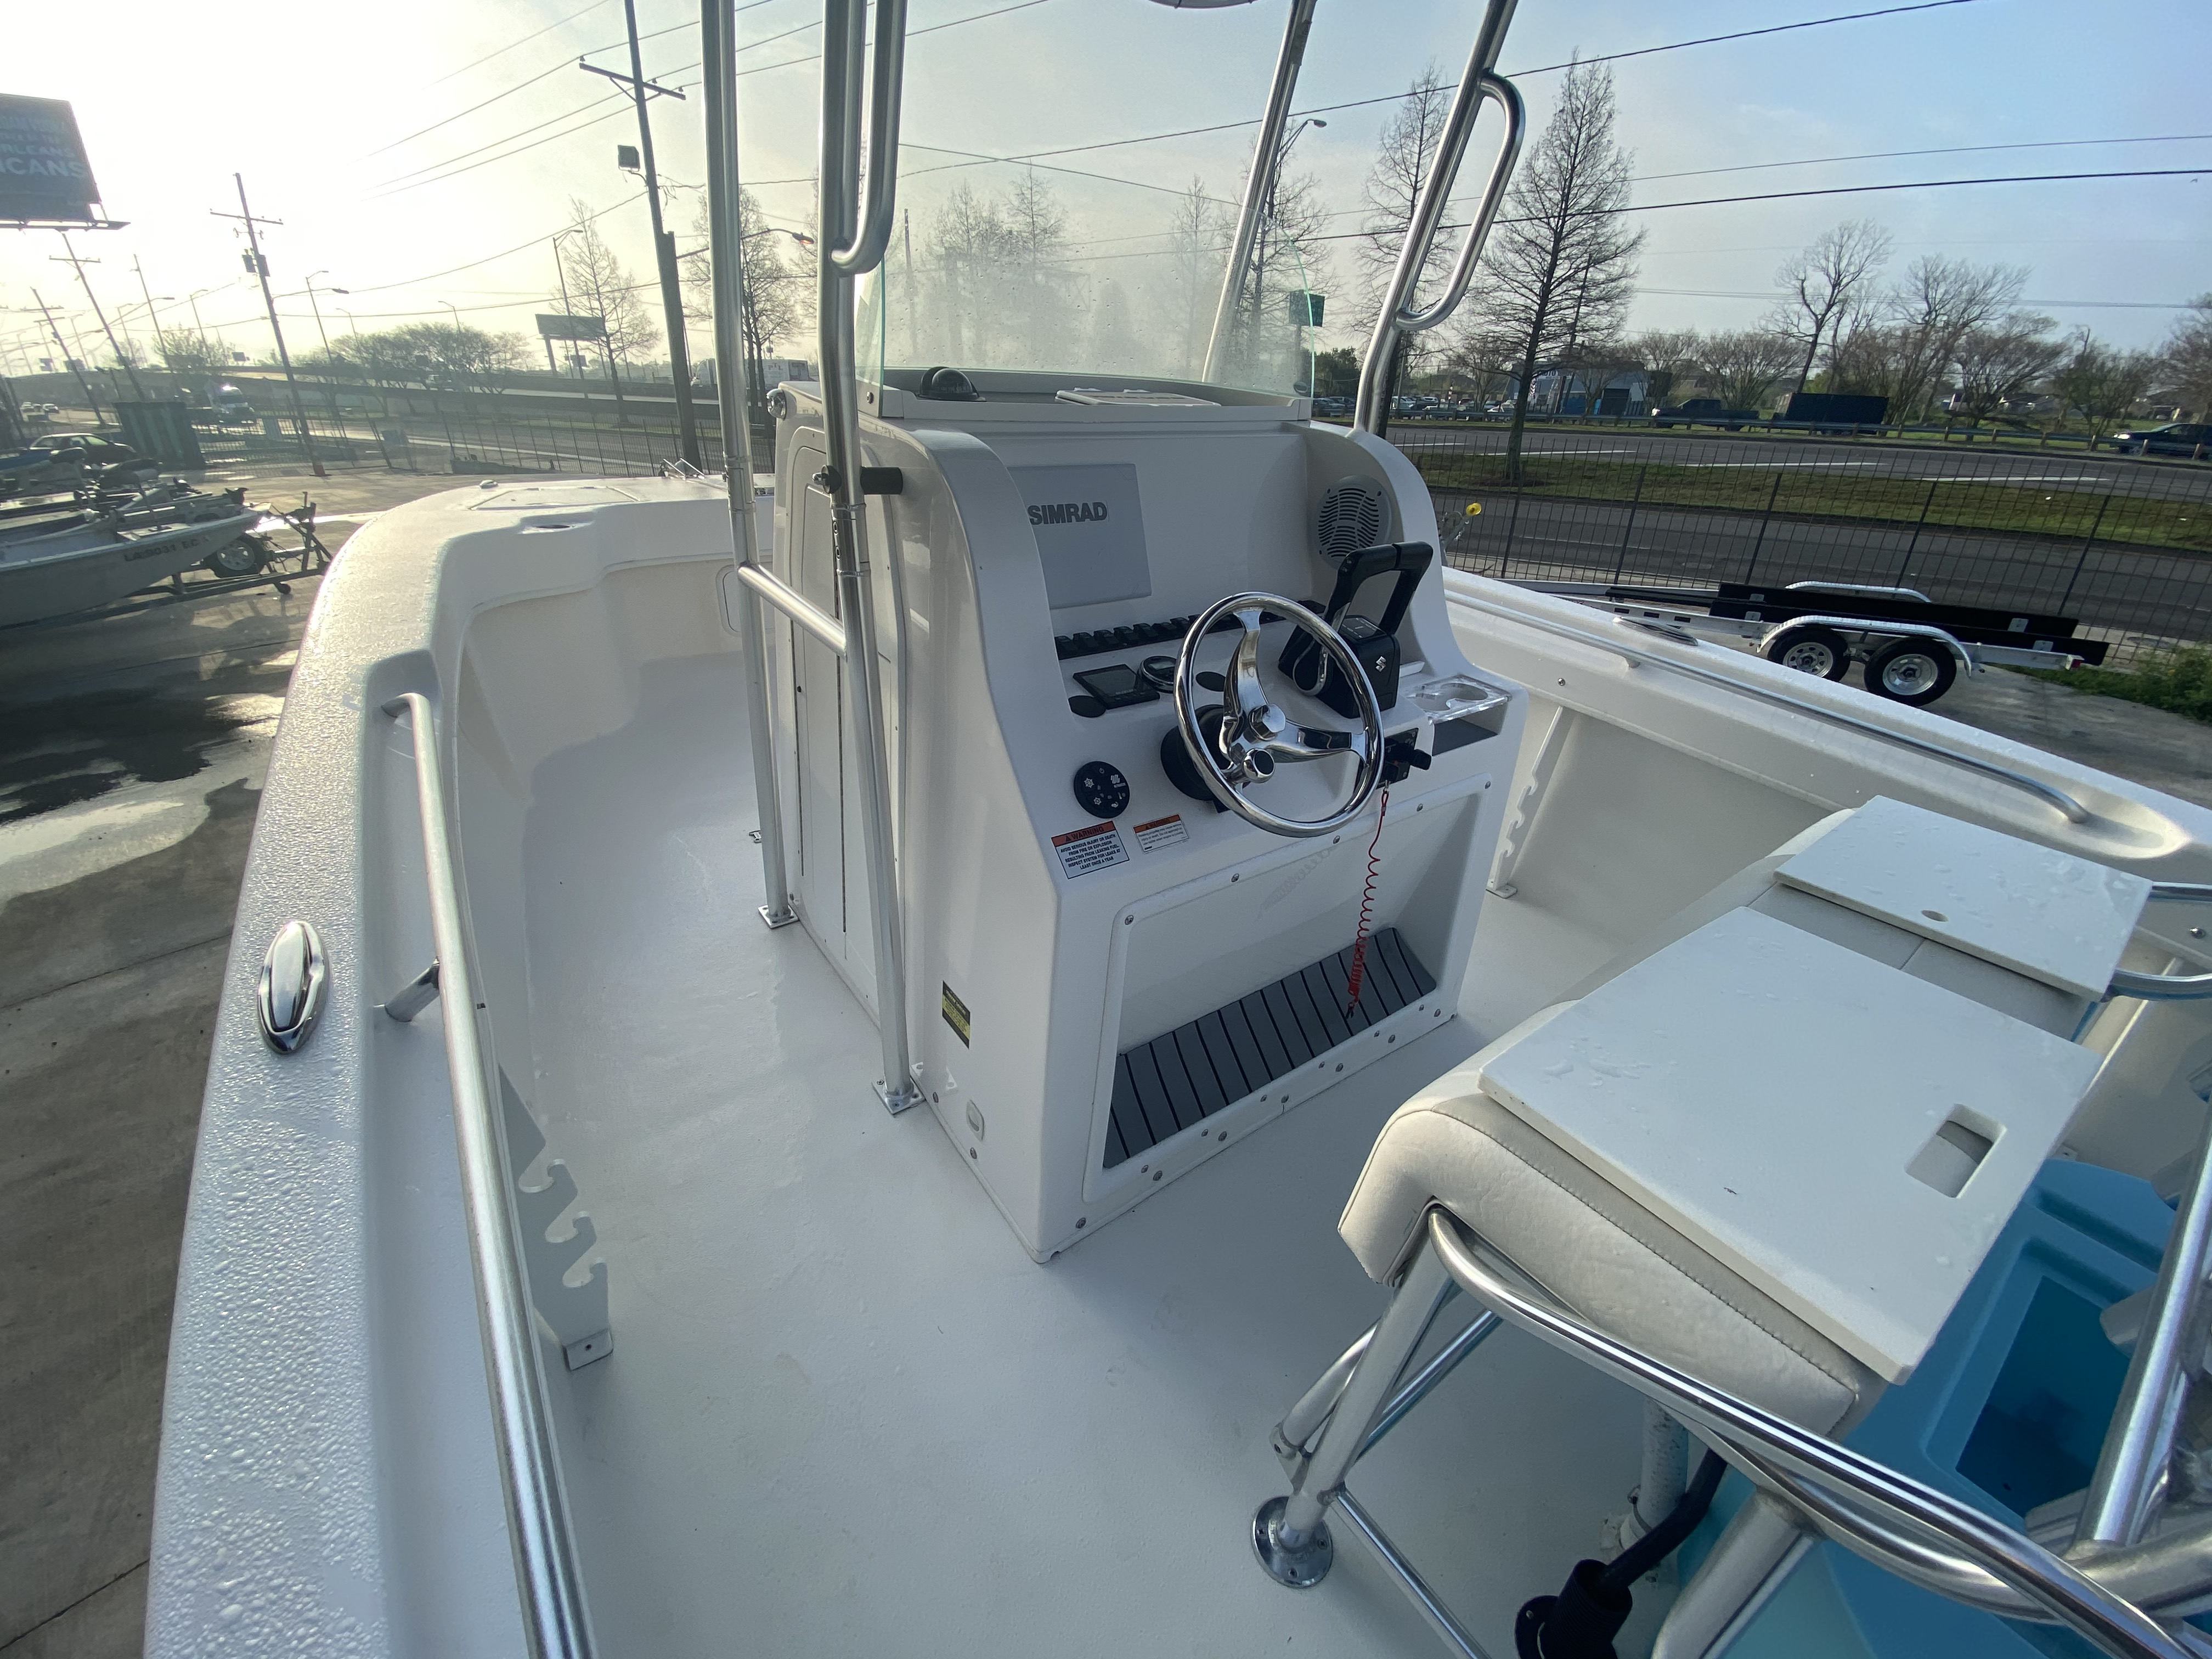 2020 Twin Vee boat for sale, model of the boat is 26 Pro & Image # 24 of 24